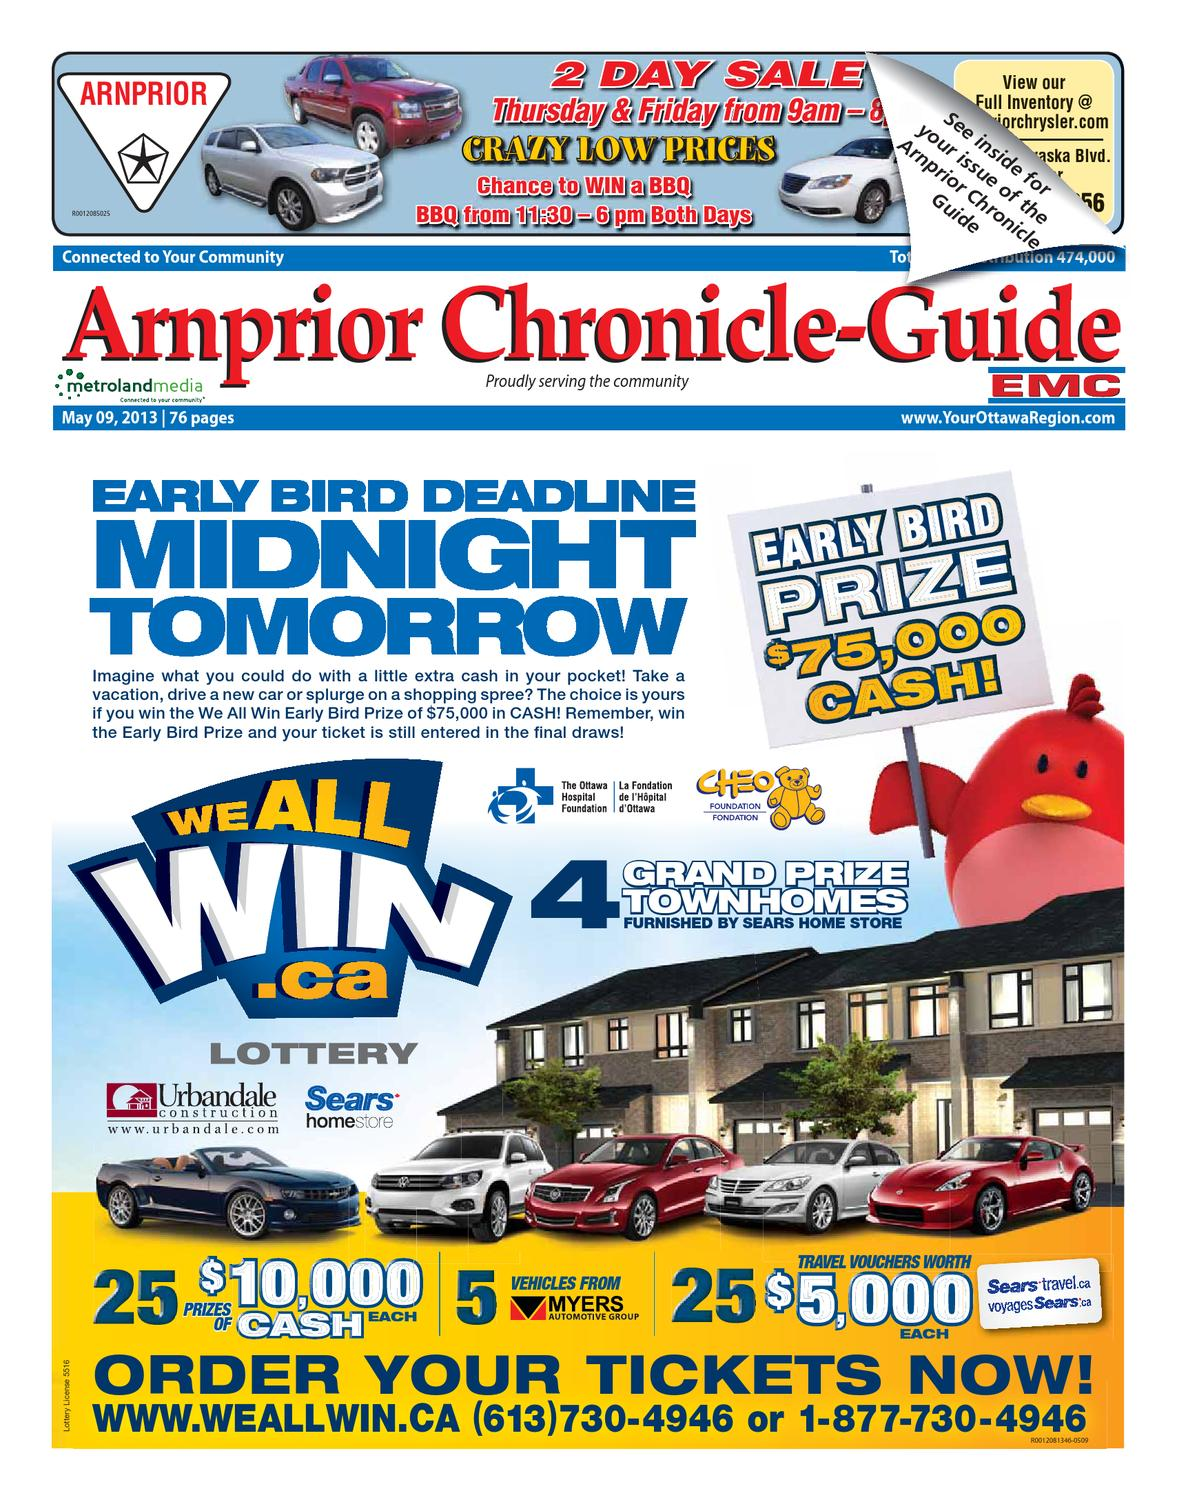 1995e02cd5c Arnprior Chronicle Guide by Metroland East - Arnprior Chronicle-Guide -  issuu